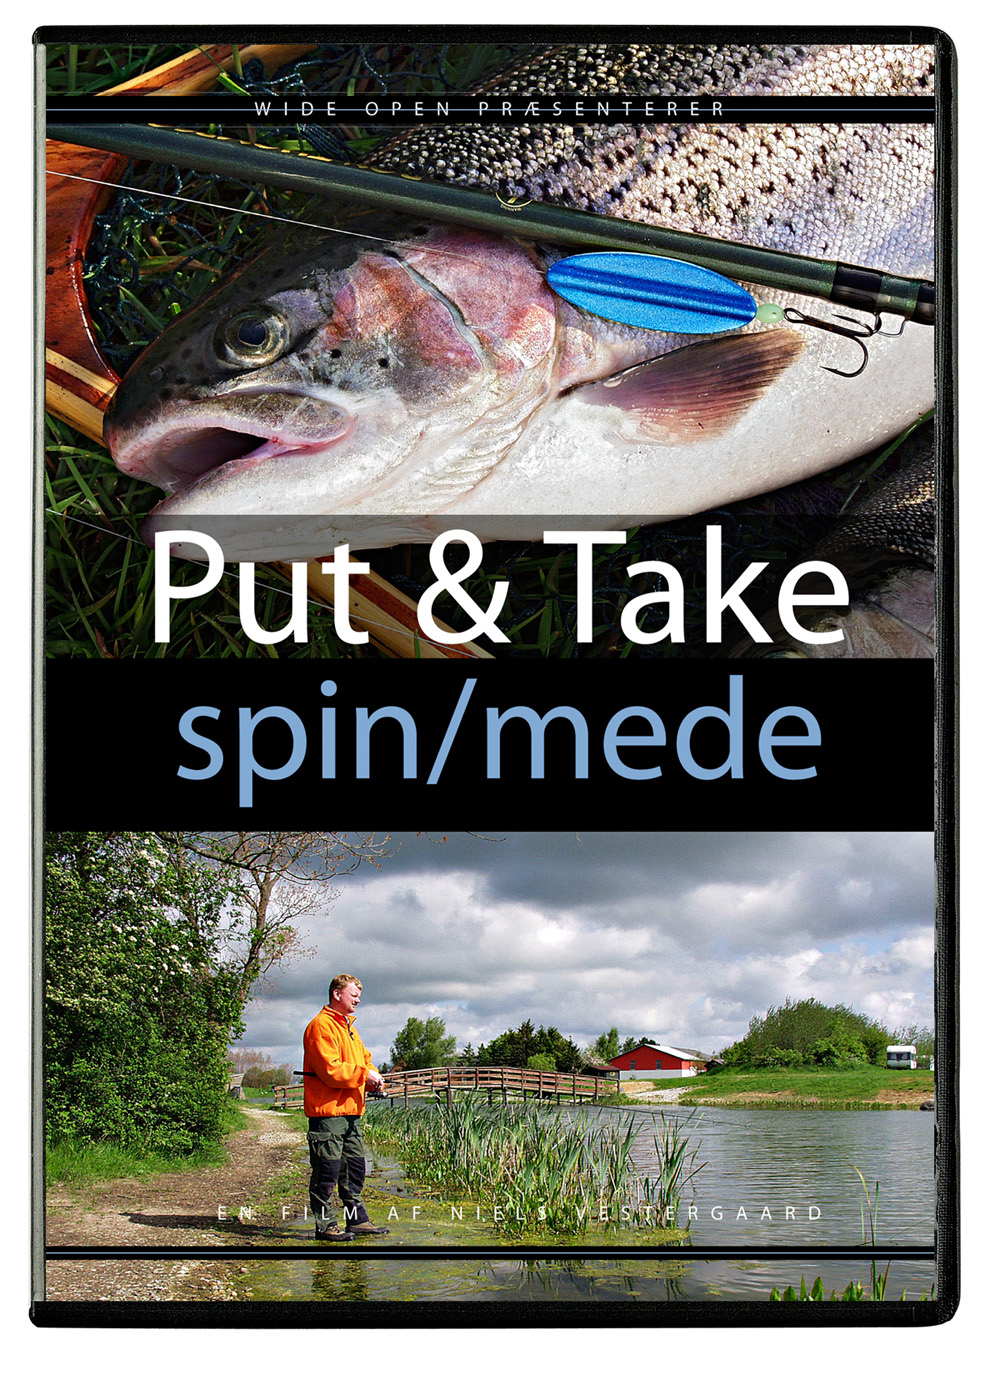 Put & Take spin/mede